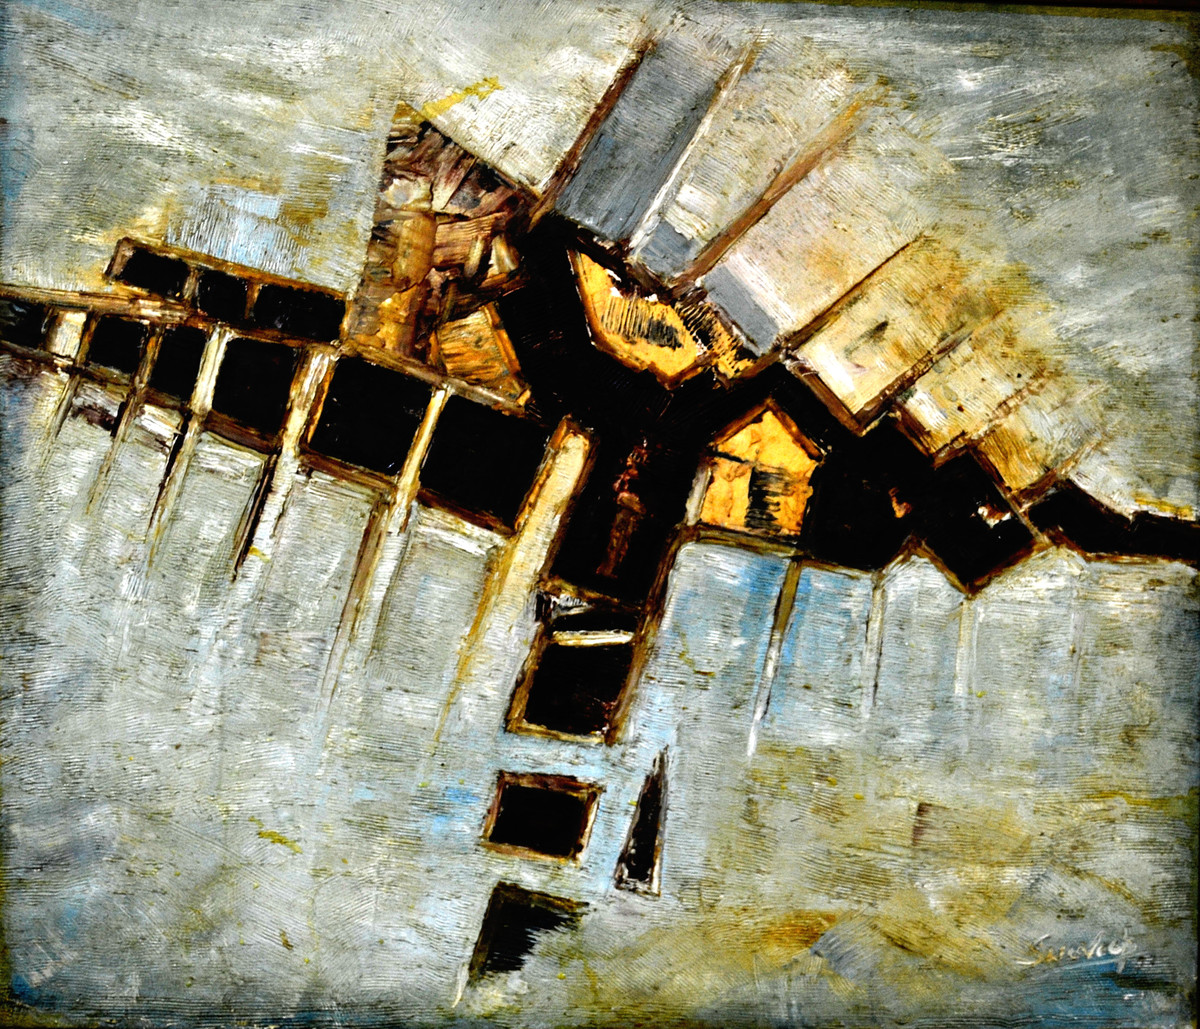 ABSTRACT-3 by Anand Swaroop, Abstract Painting, Oil on Canvas, Beige color